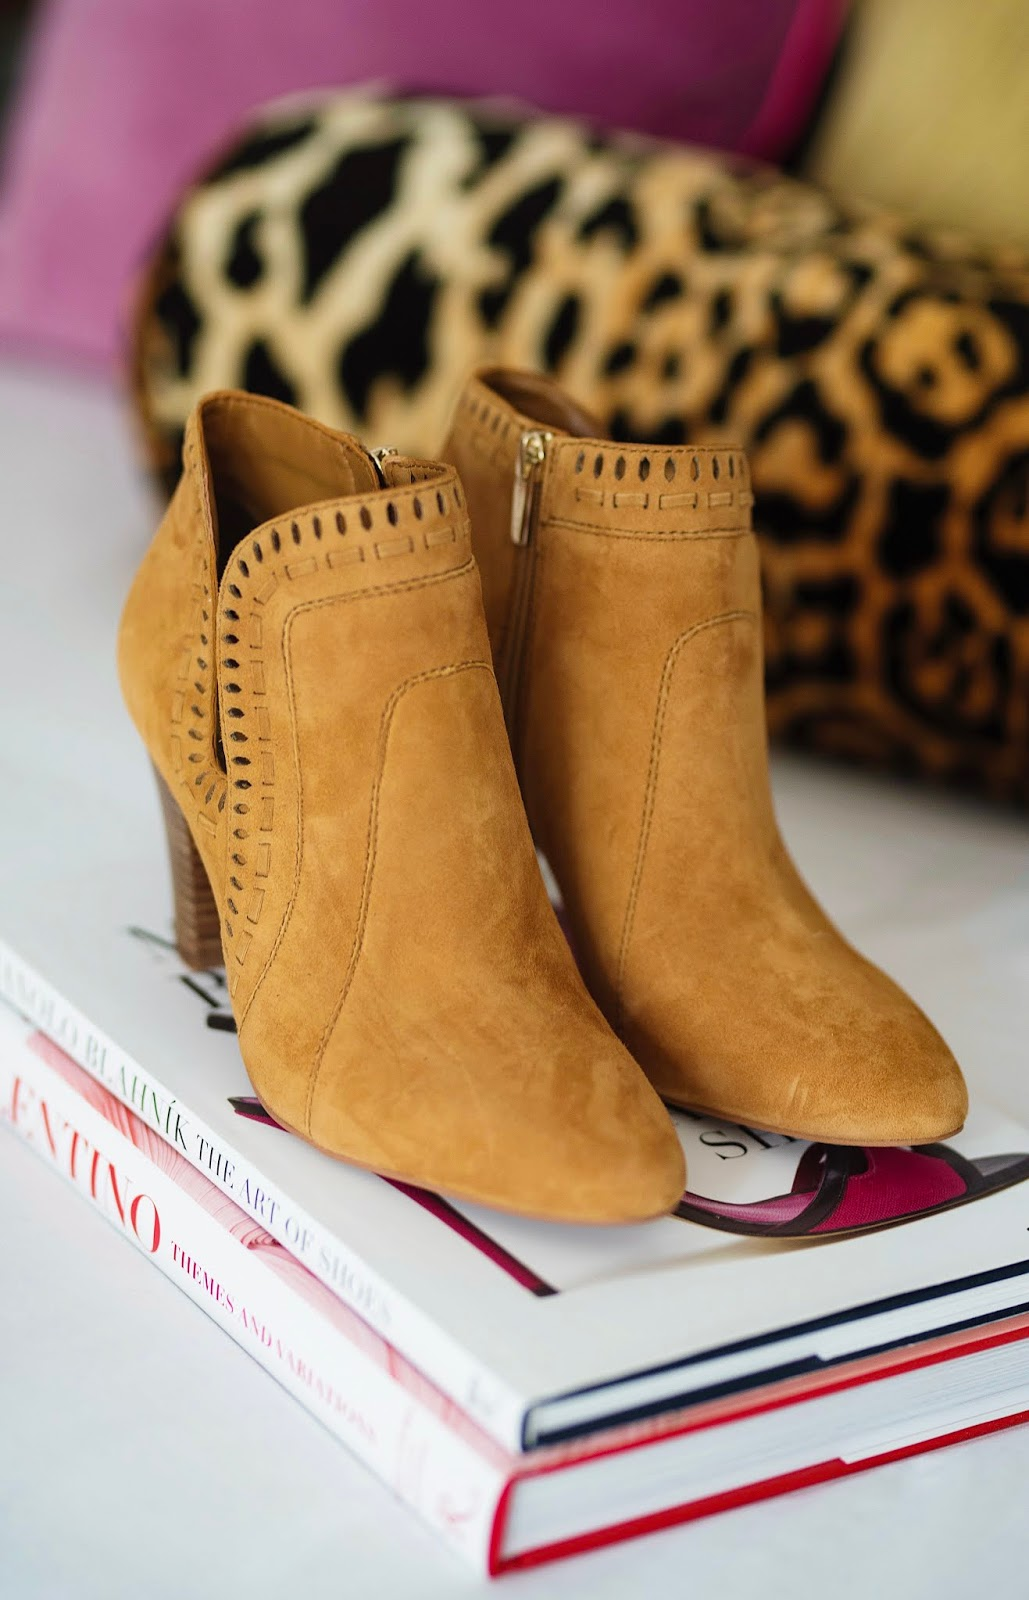 Nordstrom Anniversary Sale Vince Camuto Reeista Booties - Something Delightful Blog